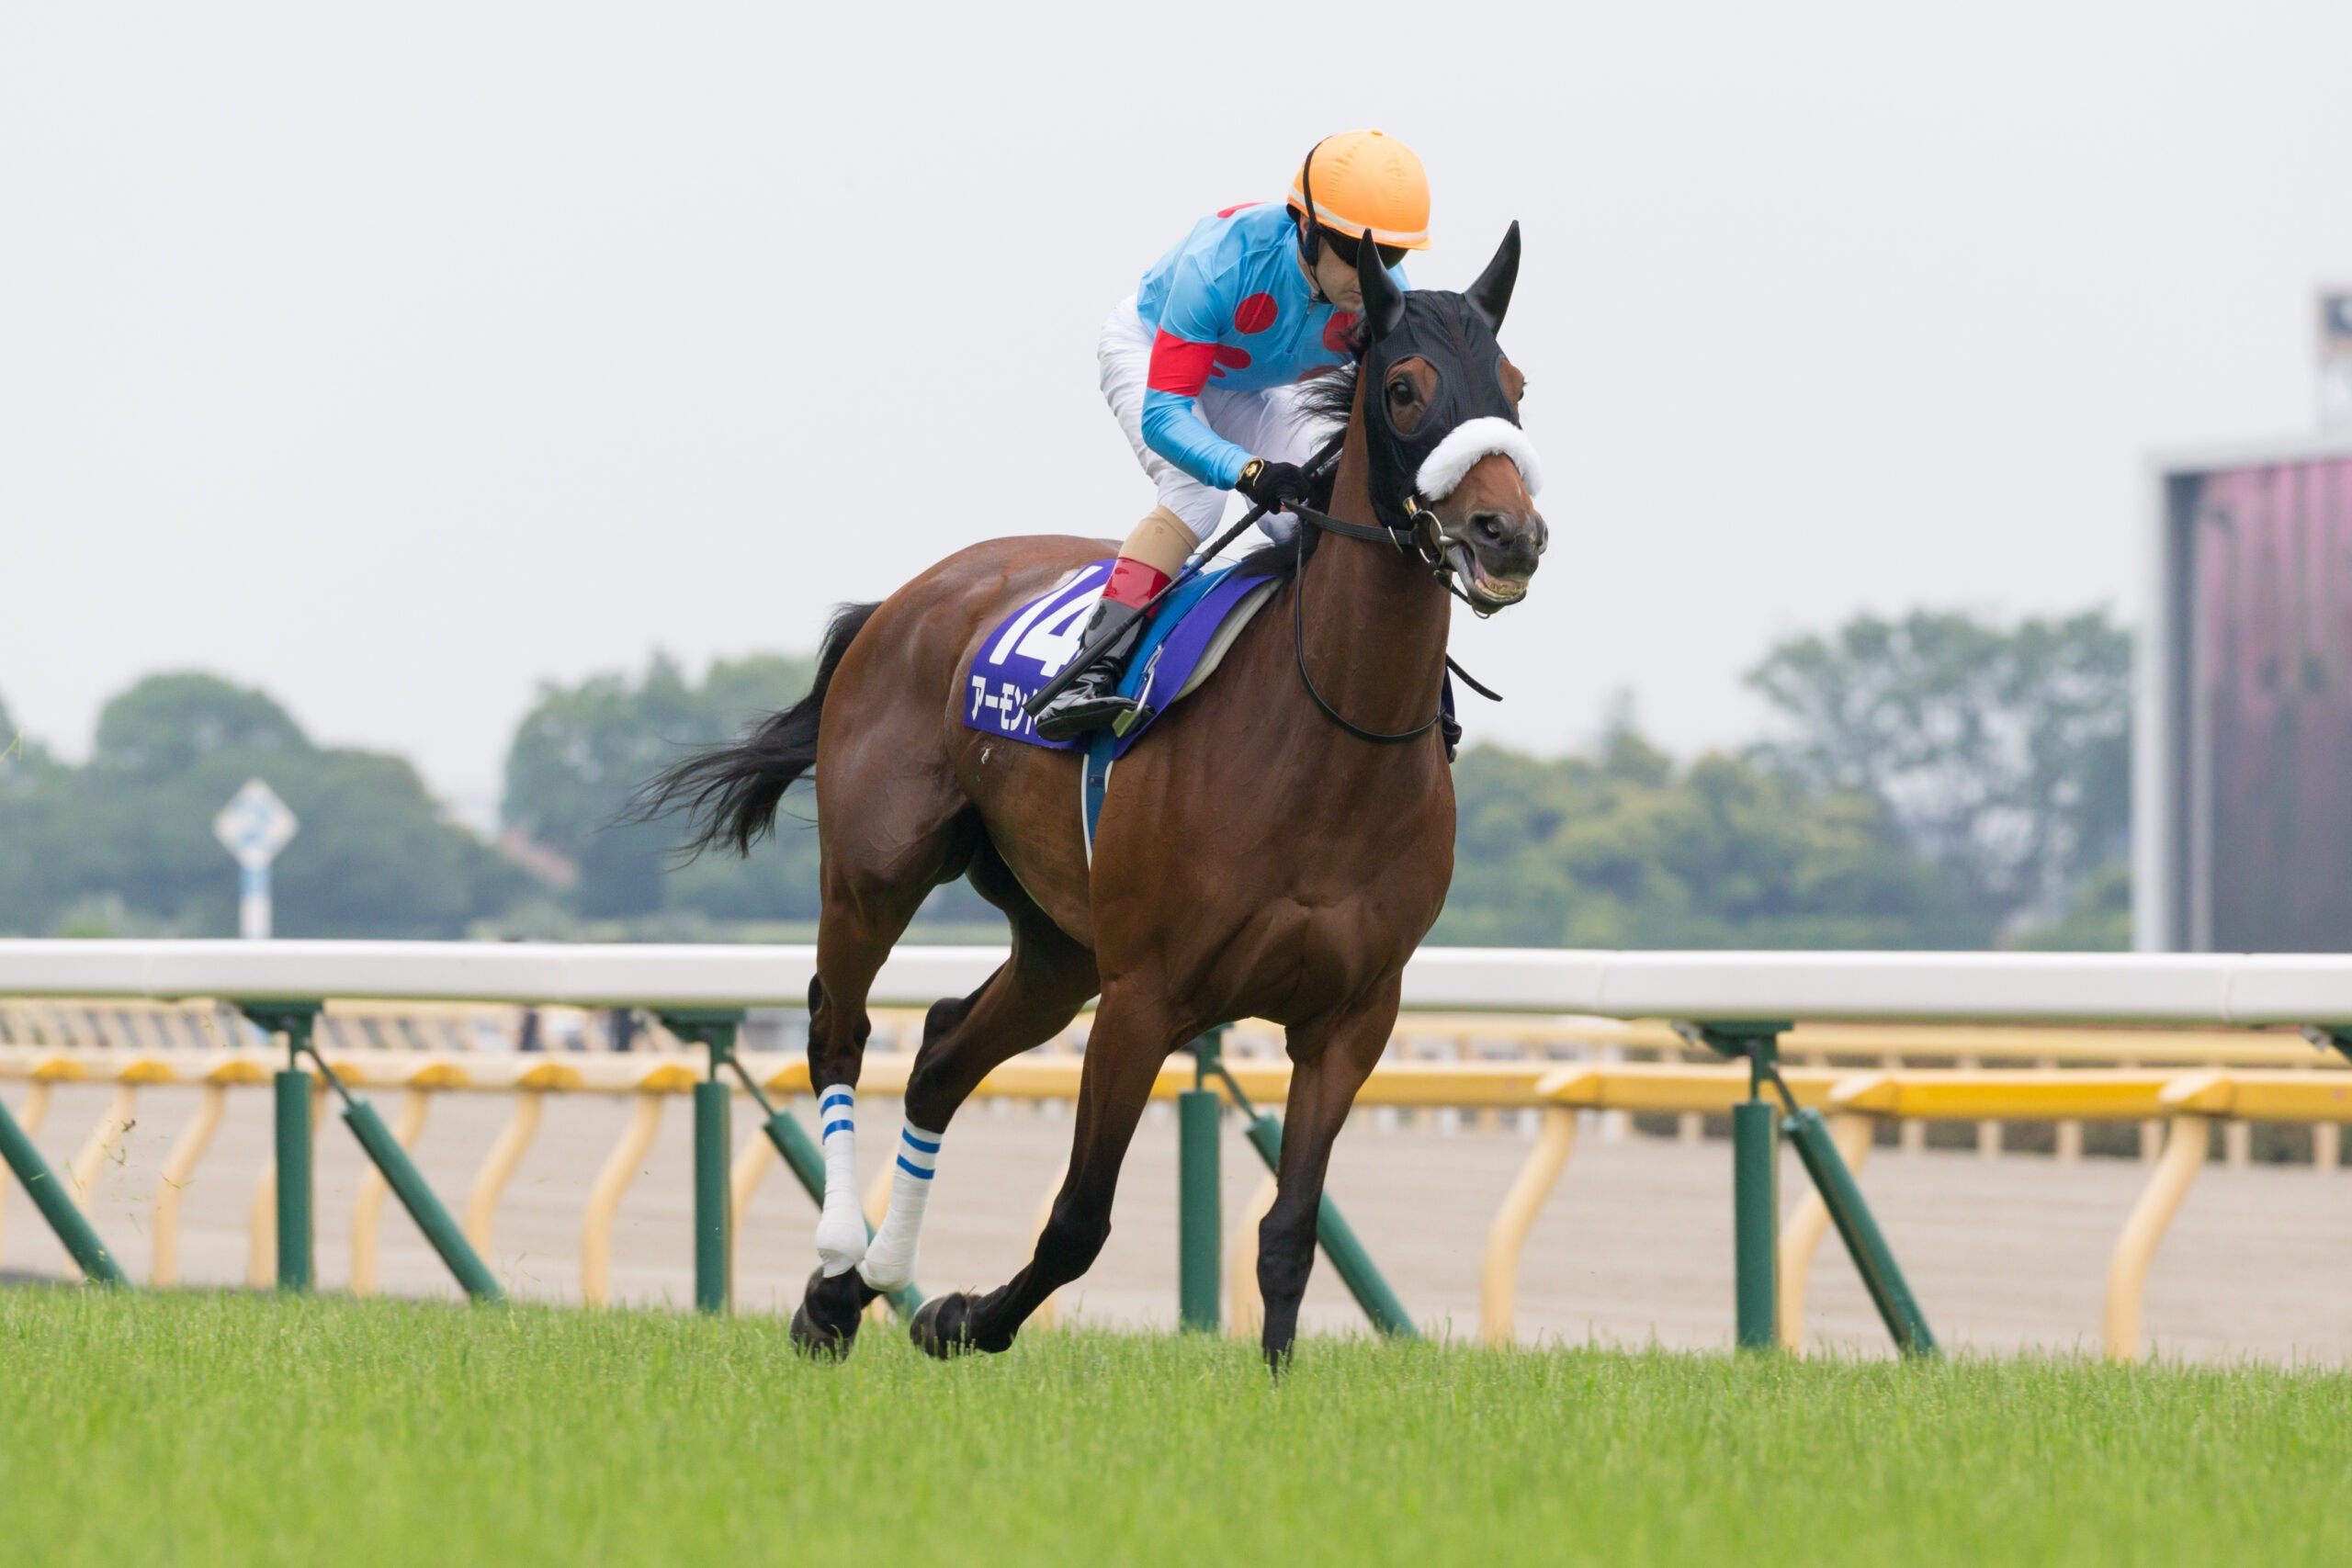 Japanese mare Almond Eye blitzed the field in the Group One Victoria Mile (1600m) in Tokyo.